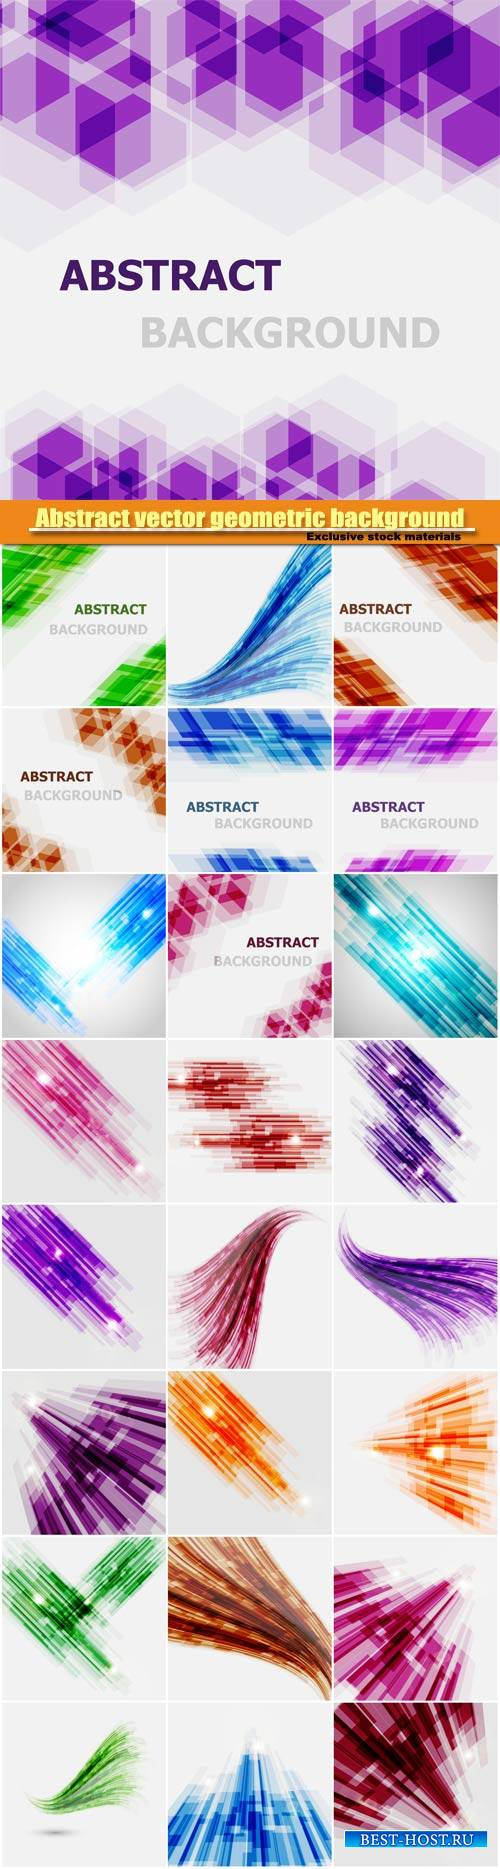 Abstract vector geometric background,  wave element design